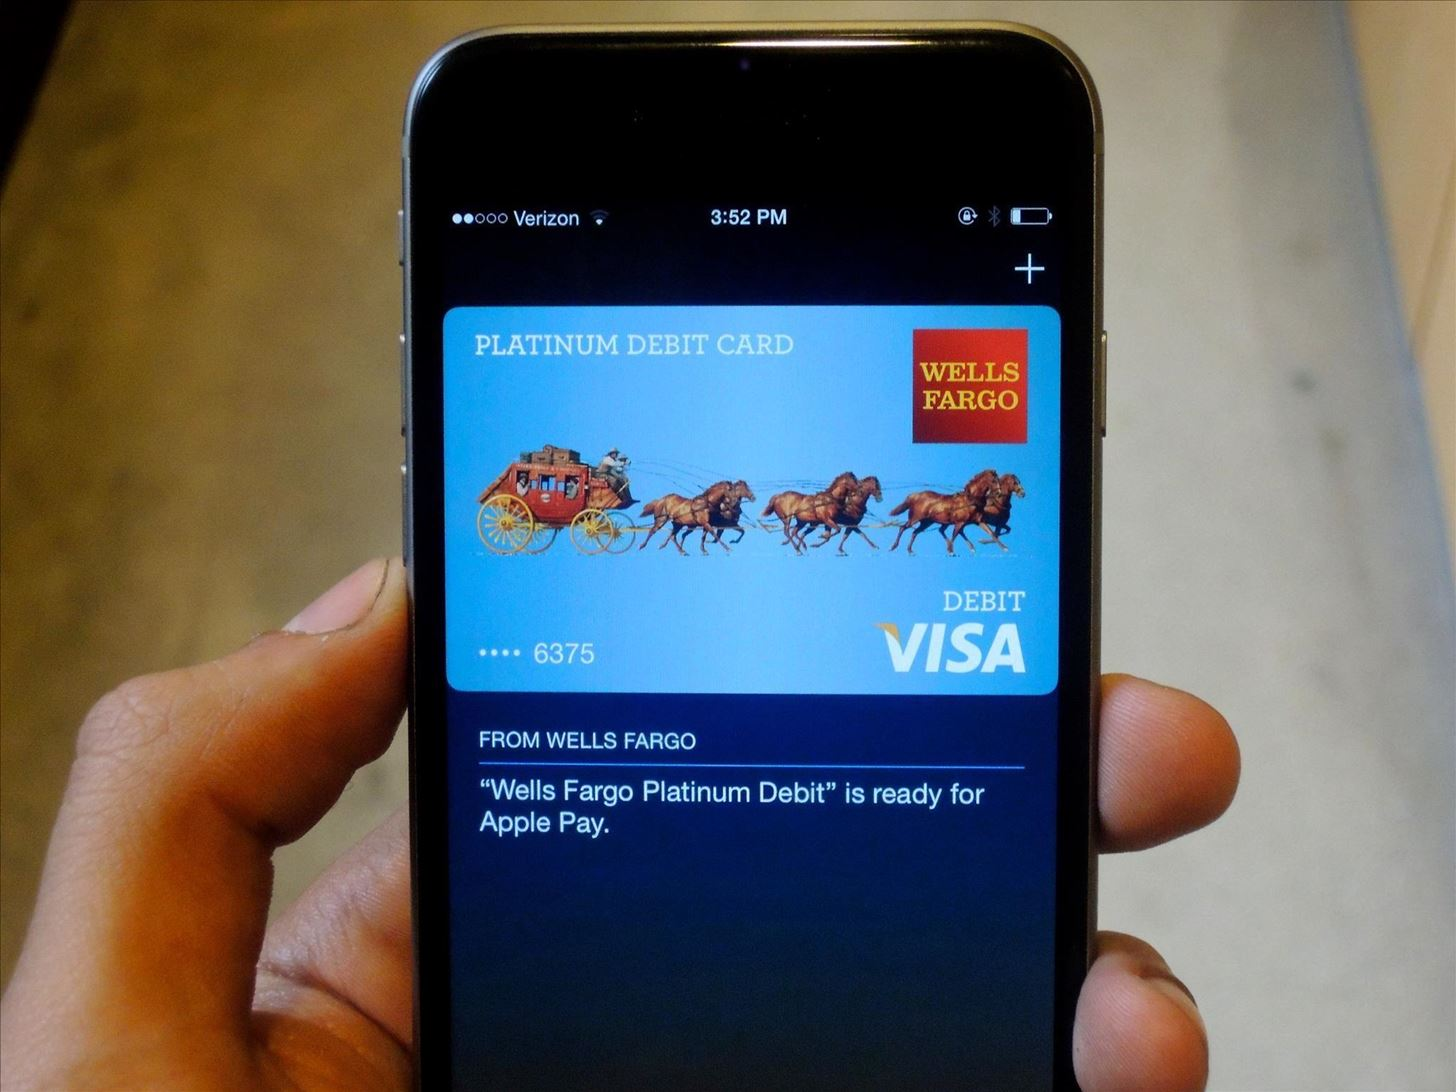 Android Devices Will Activate Apple Pay on Your iPhone 6